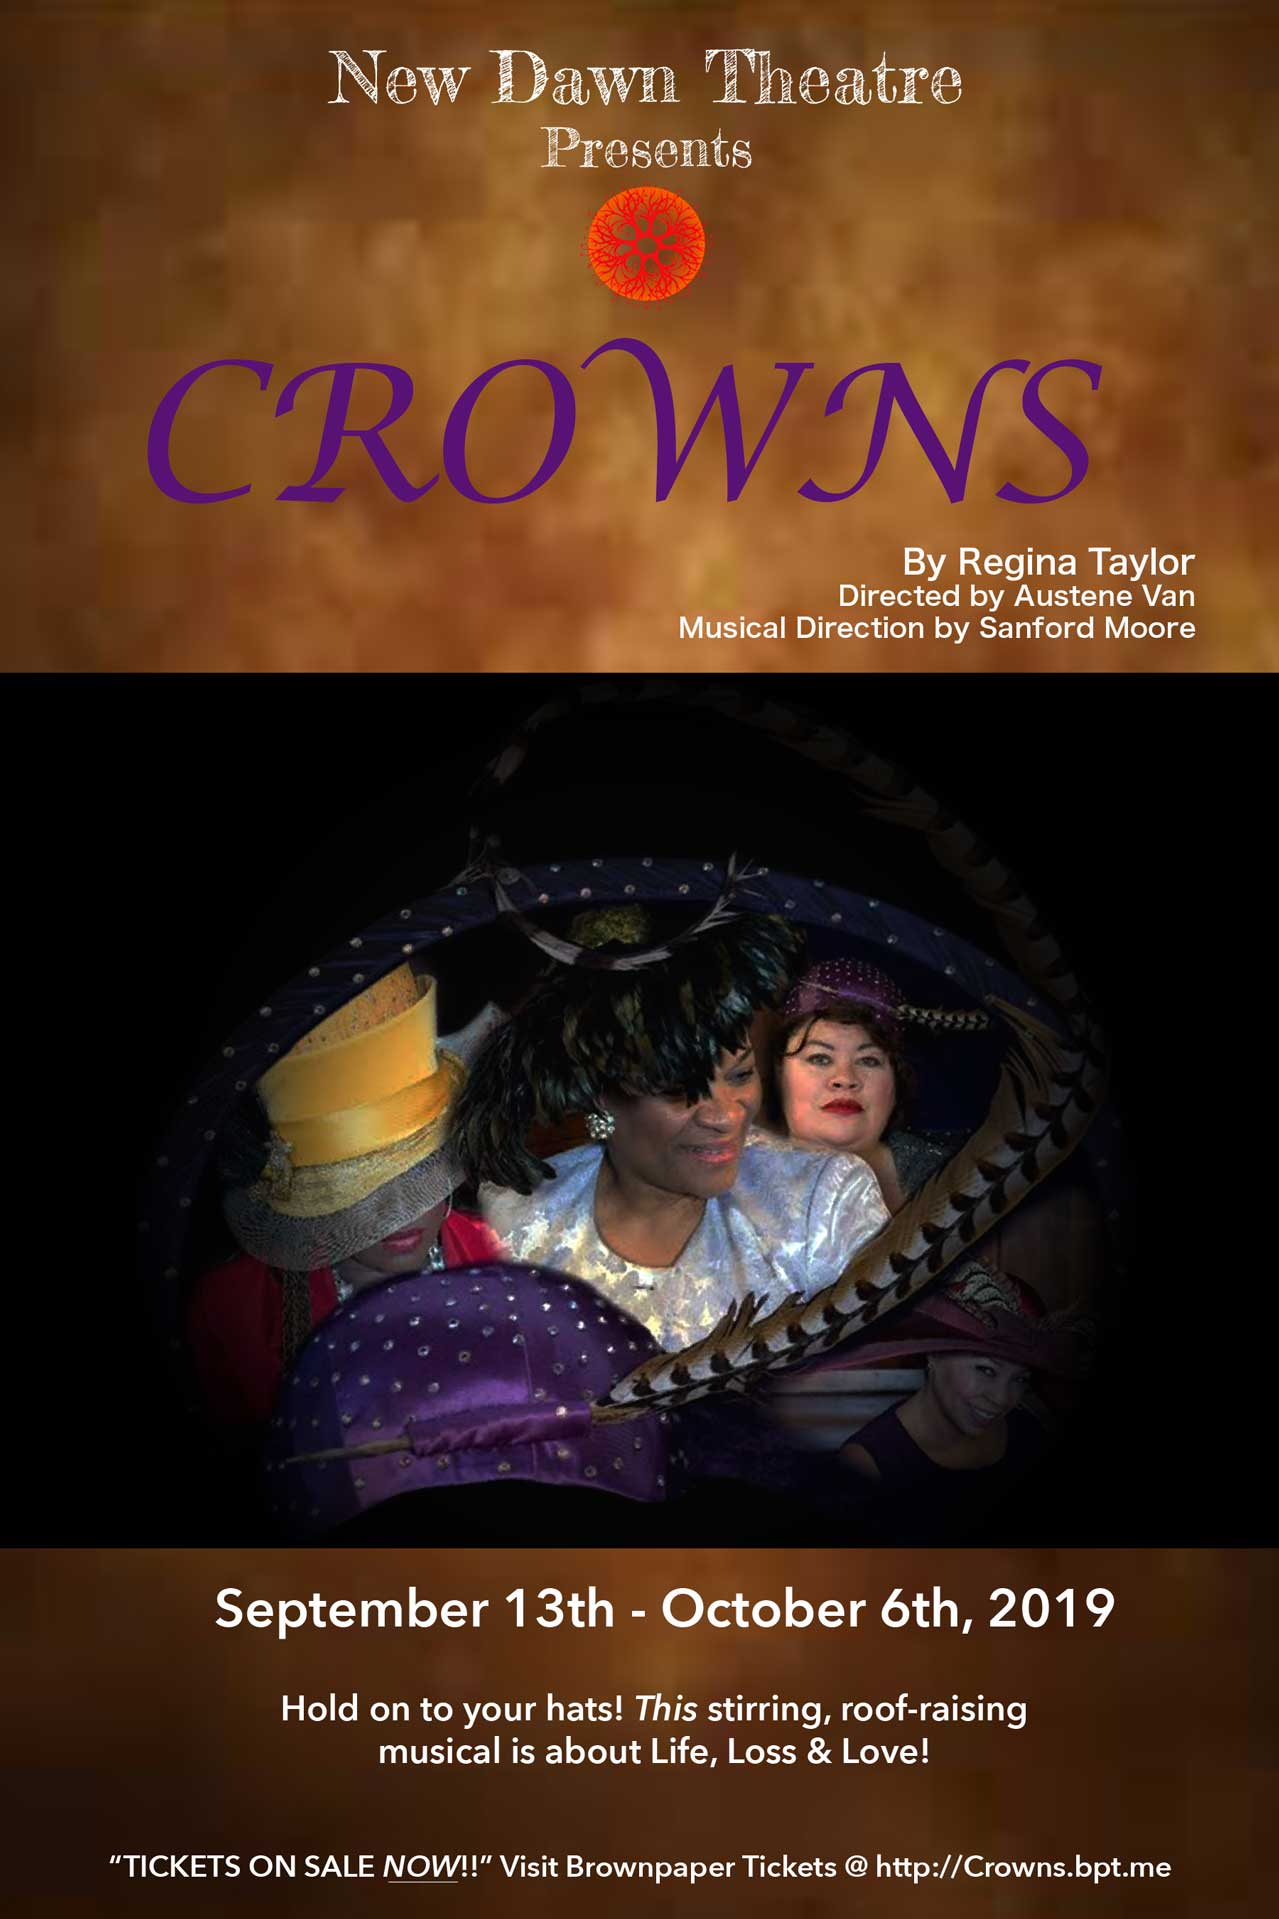 crowns by regina taylor